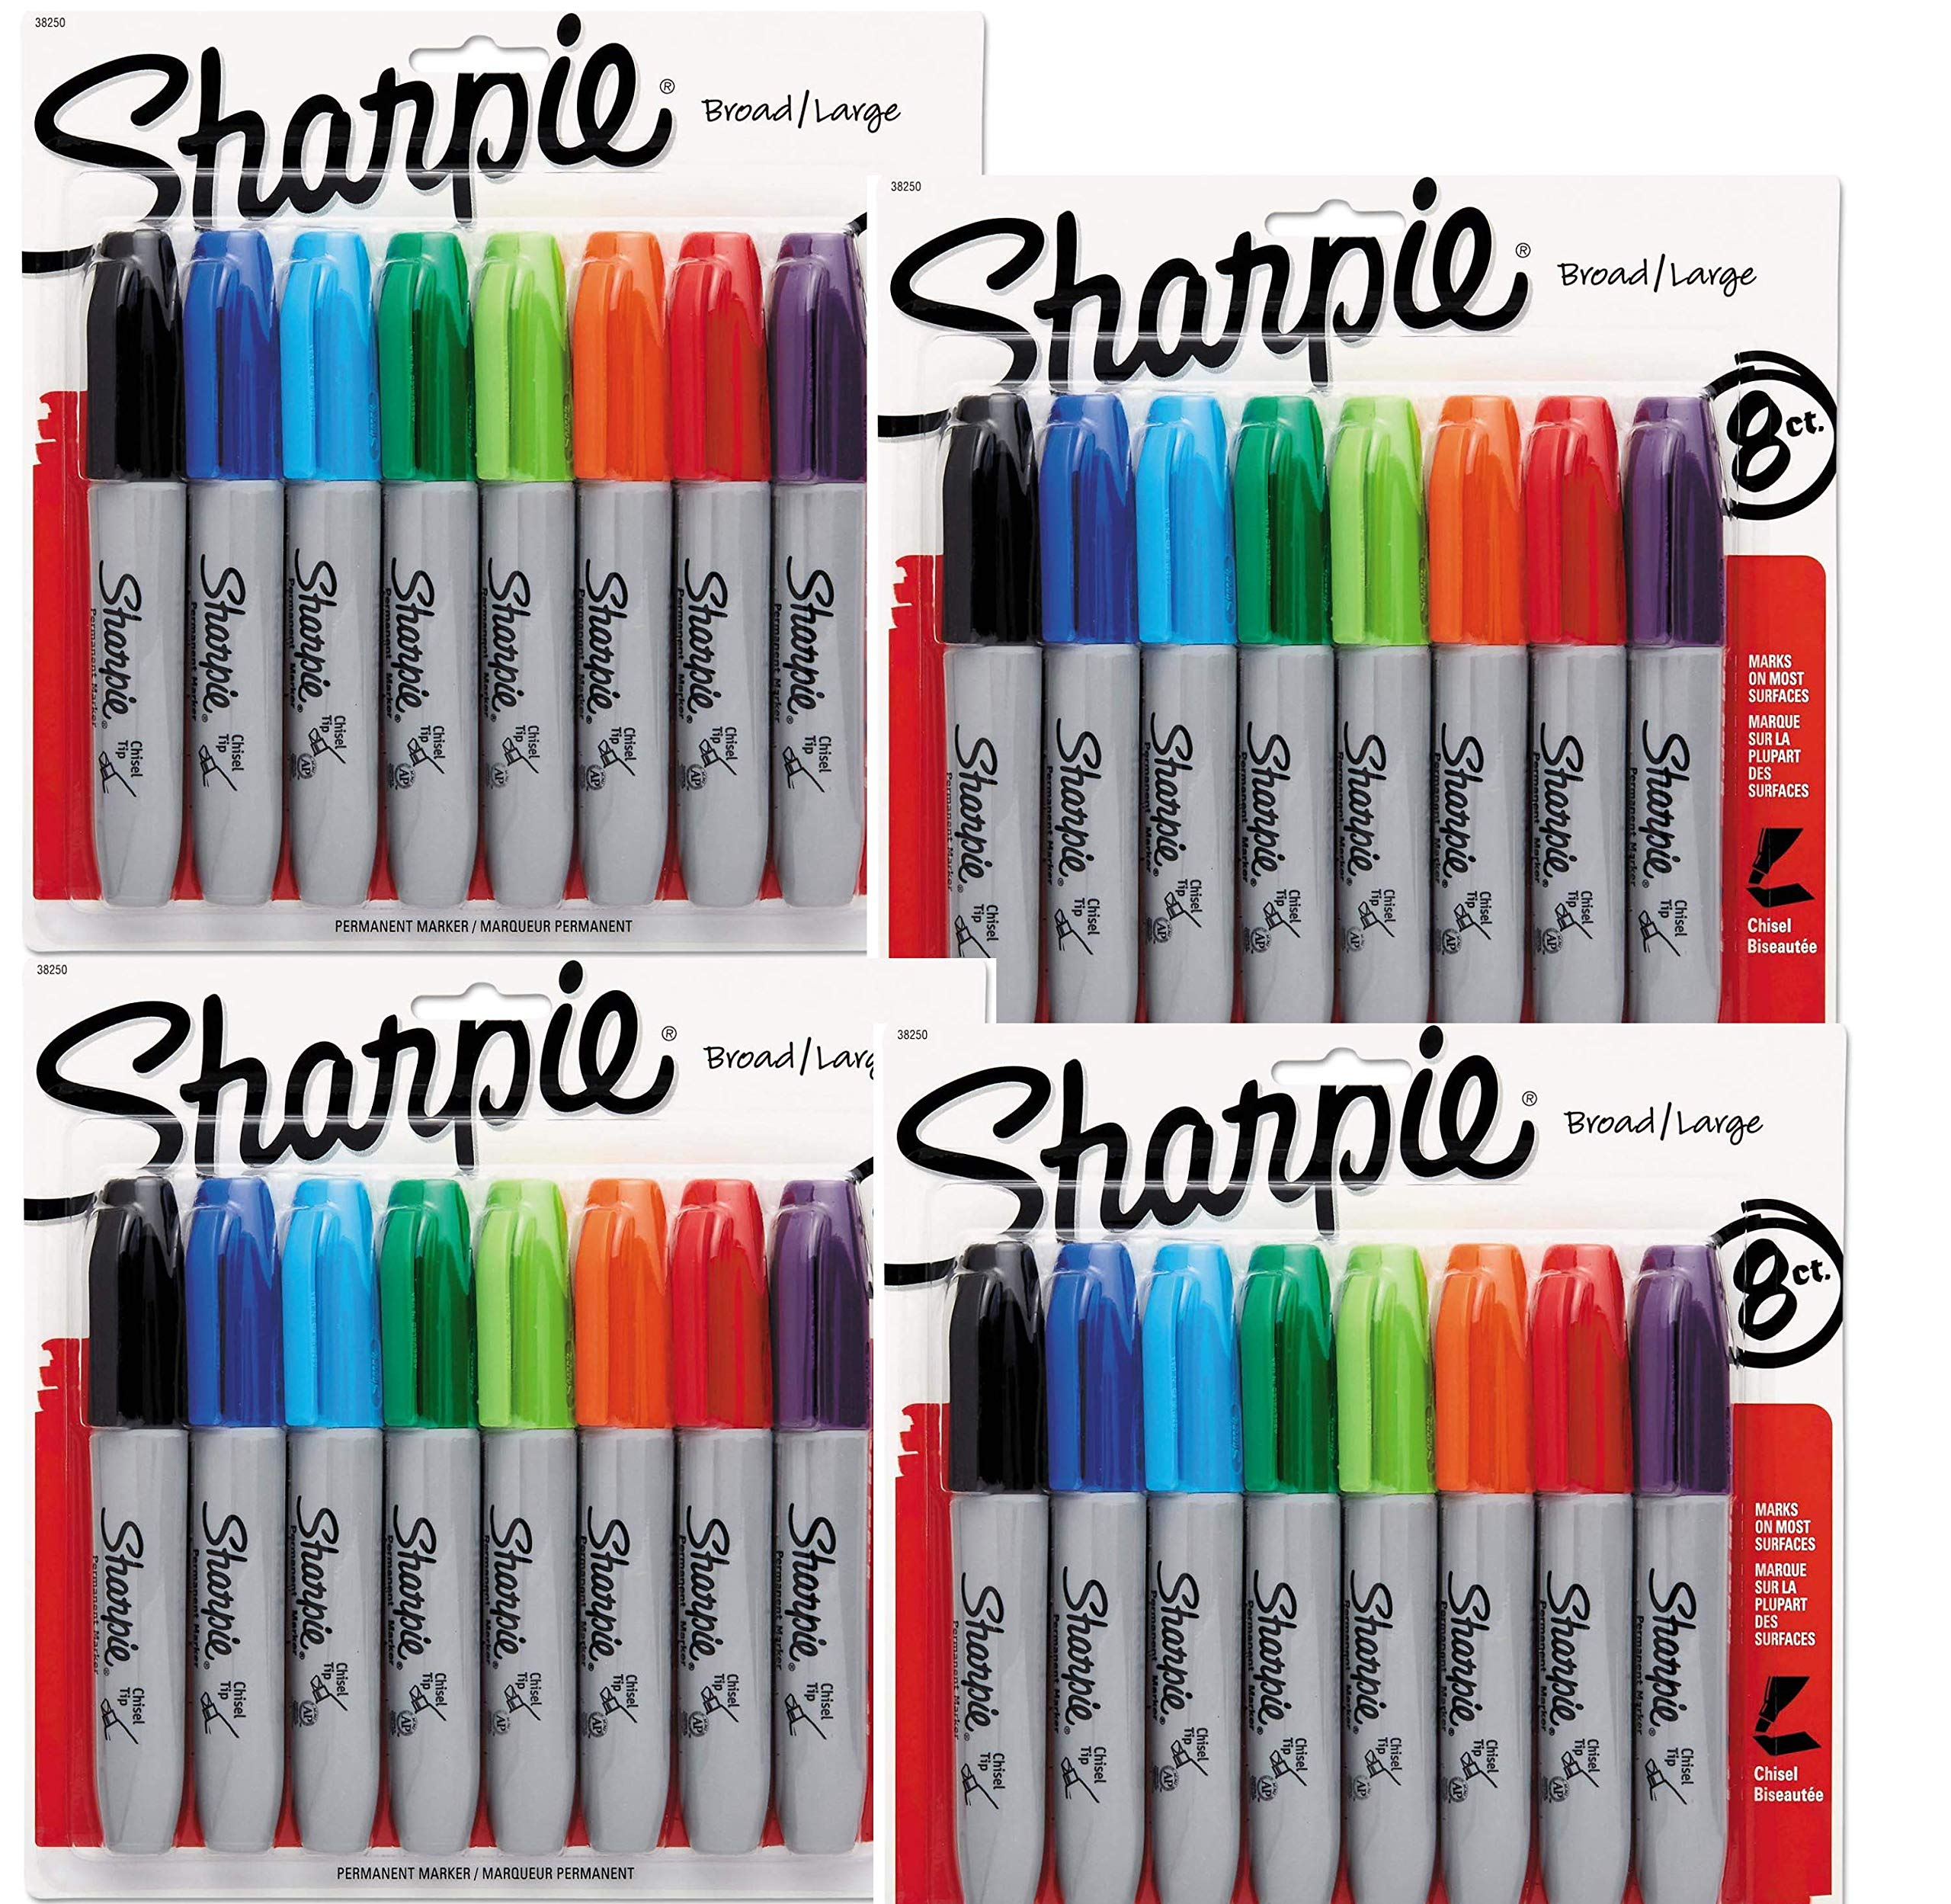 Sharpie Permanent Markers, Chisel Tip, Assorted Colors, 8-Count (38250PP) - 4 Packs, 32 Markers in Total - Black, Blue, Turquoise, Green, Lime, Orange, Red, and Purple by Sharpie